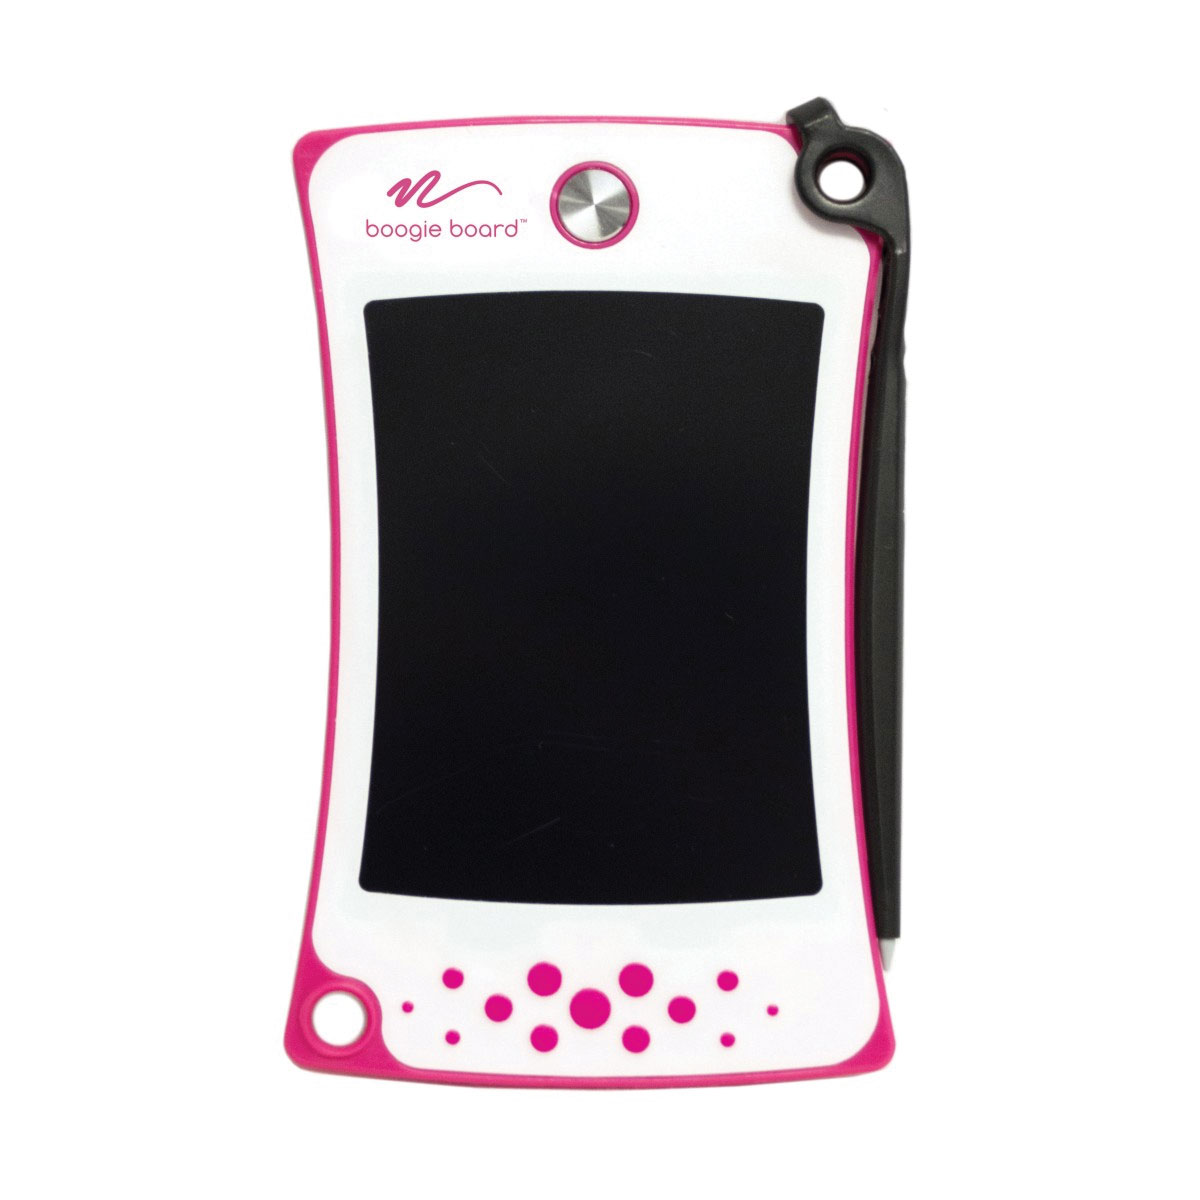 MaxiAids   Boogie Board Jot 4.5 LCD eWriter - Pink d13b6c6b08